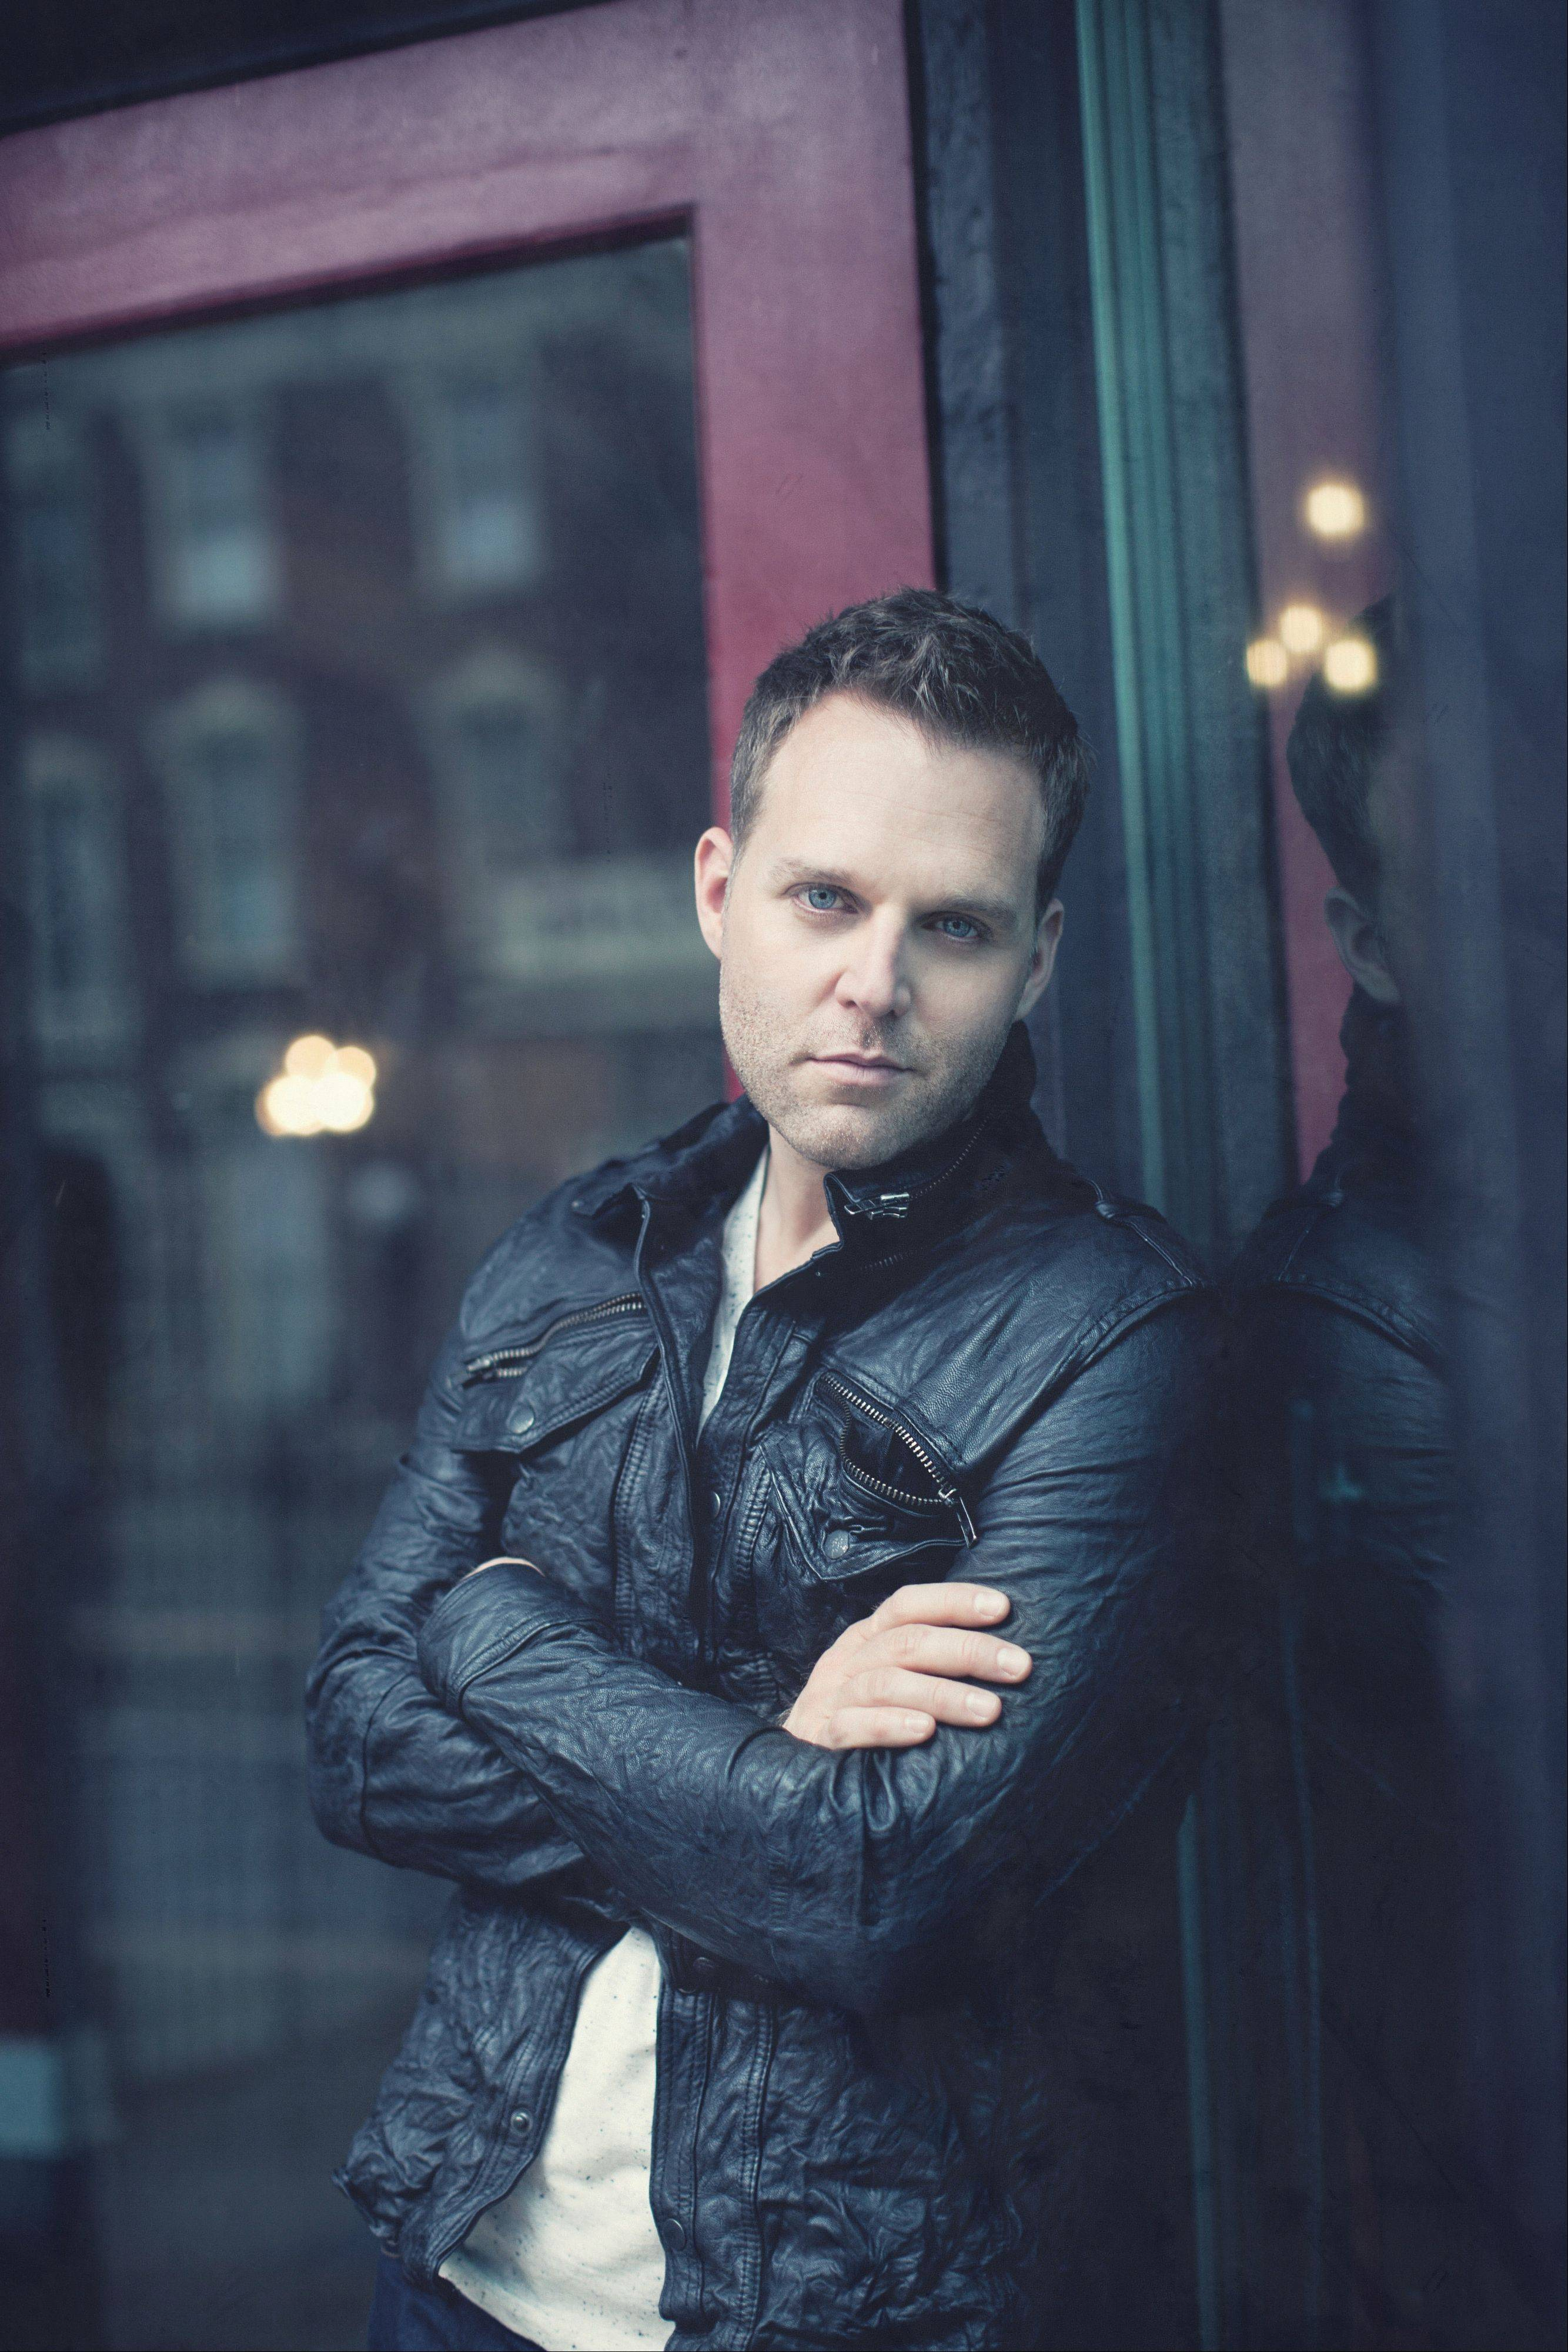 Christian music singer/songwriter Matthew West, who grew up in Downers Grove, is nominated for two Grammy Awards.